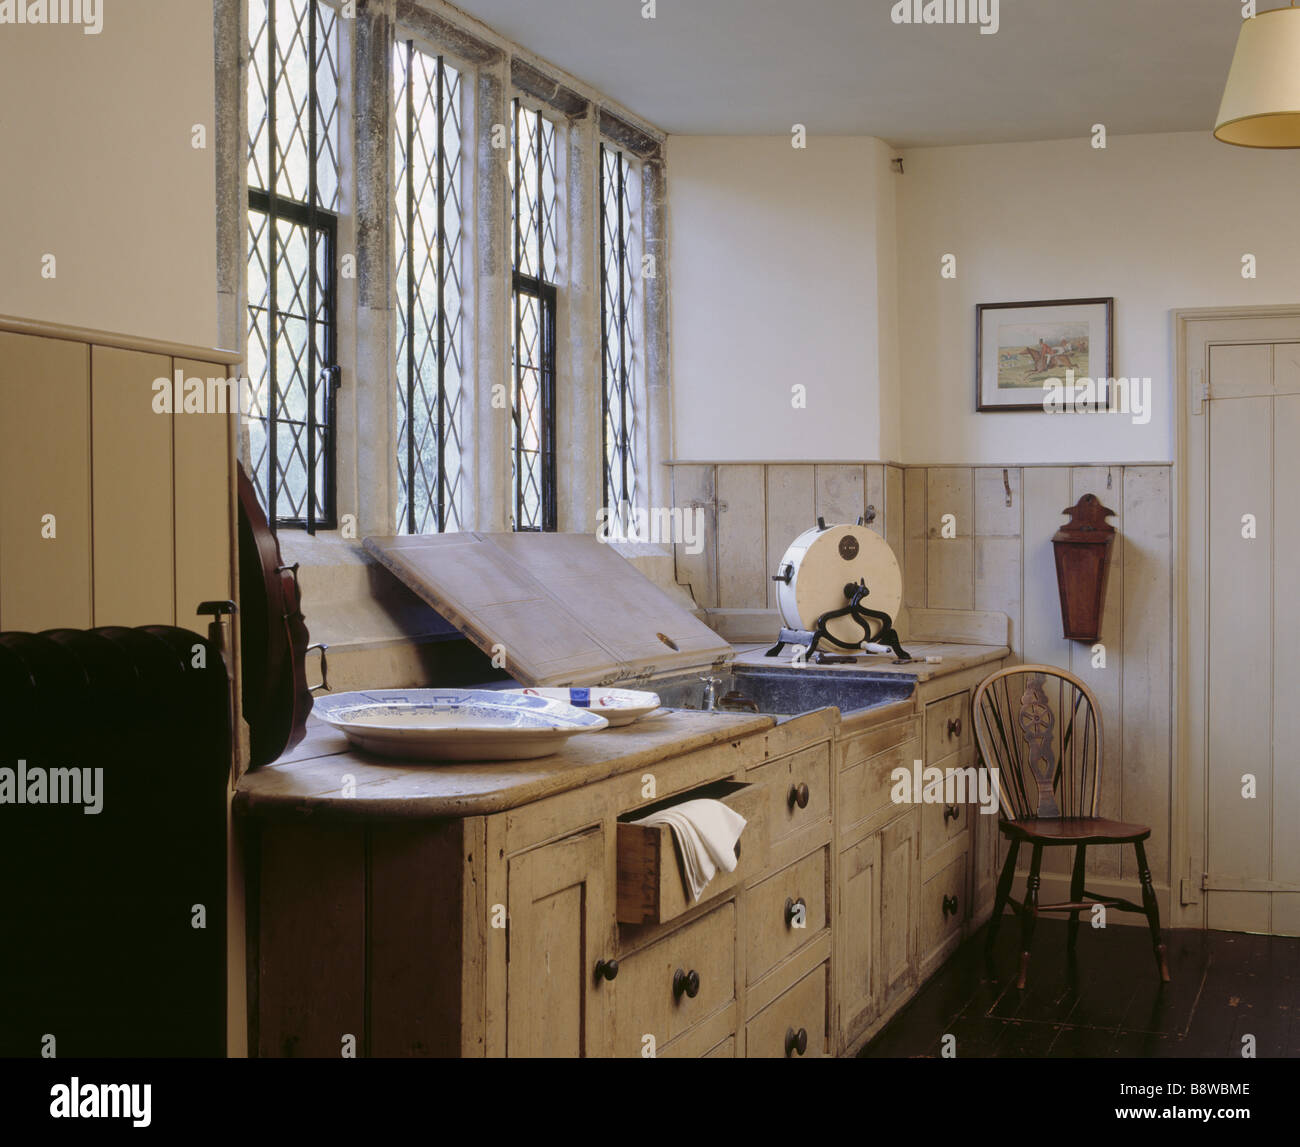 Room view of the Butler s Pantry at Ightham Mote showing the windows sink part of radiator and the wooden kitchen Stock Photo